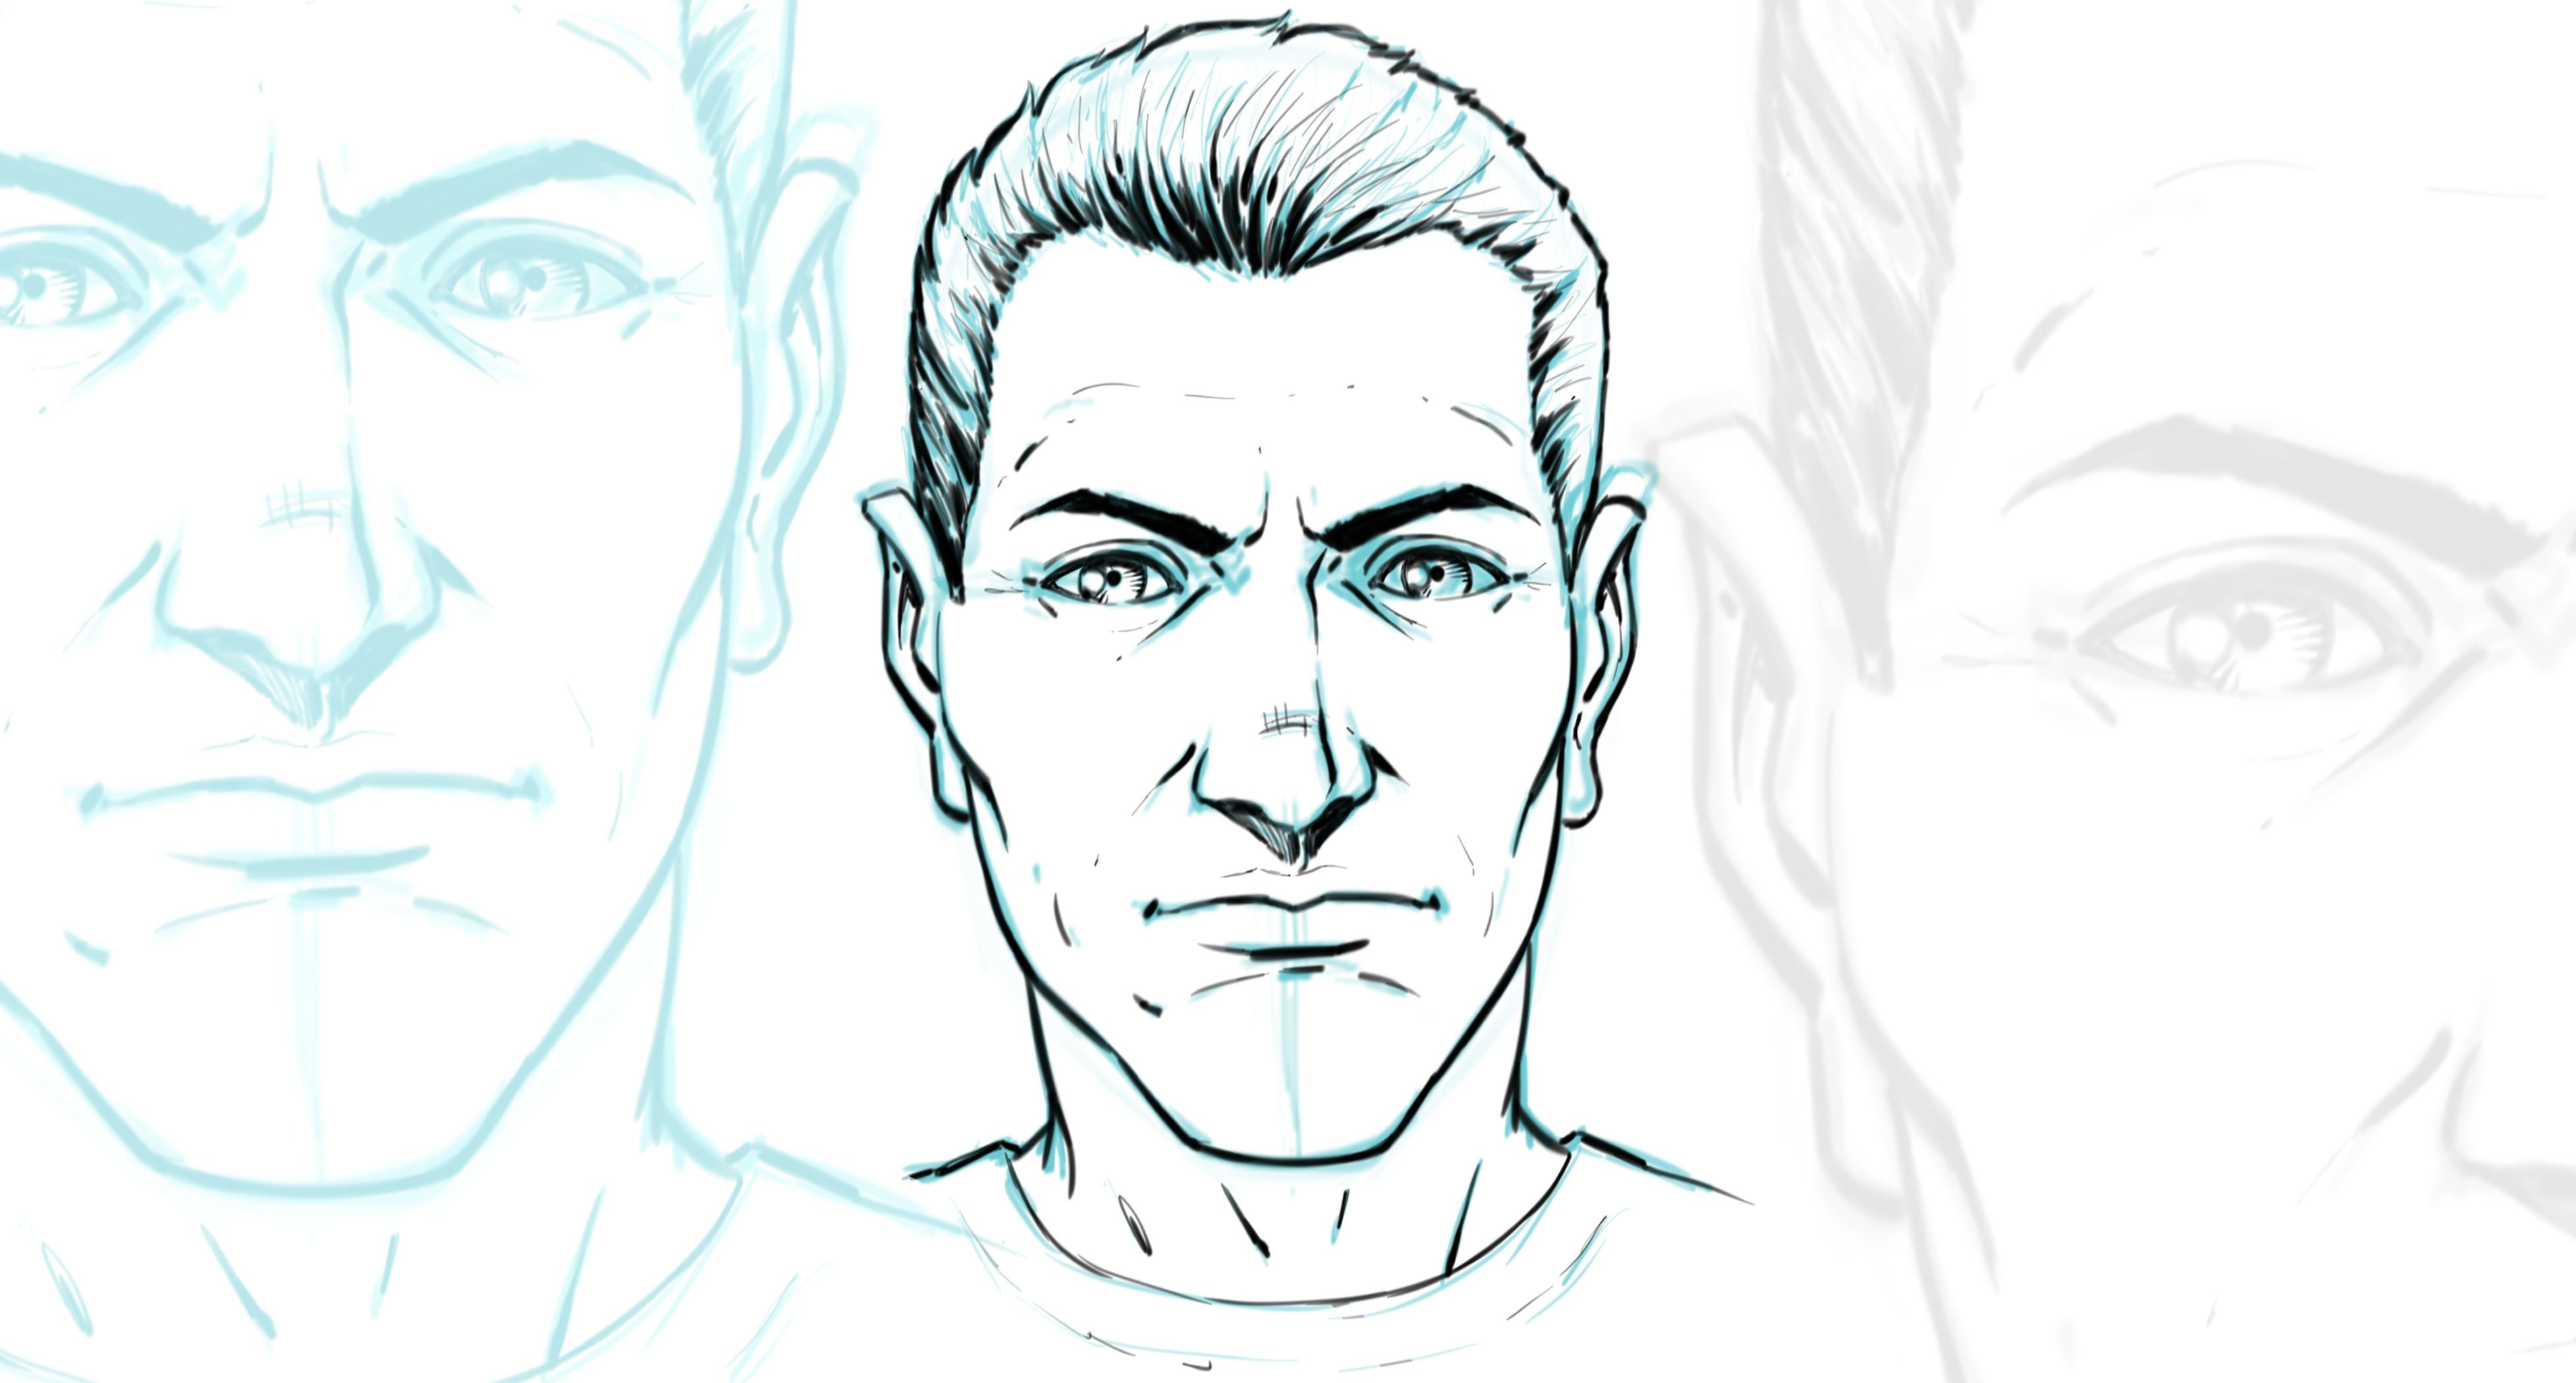 How to Draw Comic Book Style Faces in Sketchbook Pro 8 | Robert Marzullo